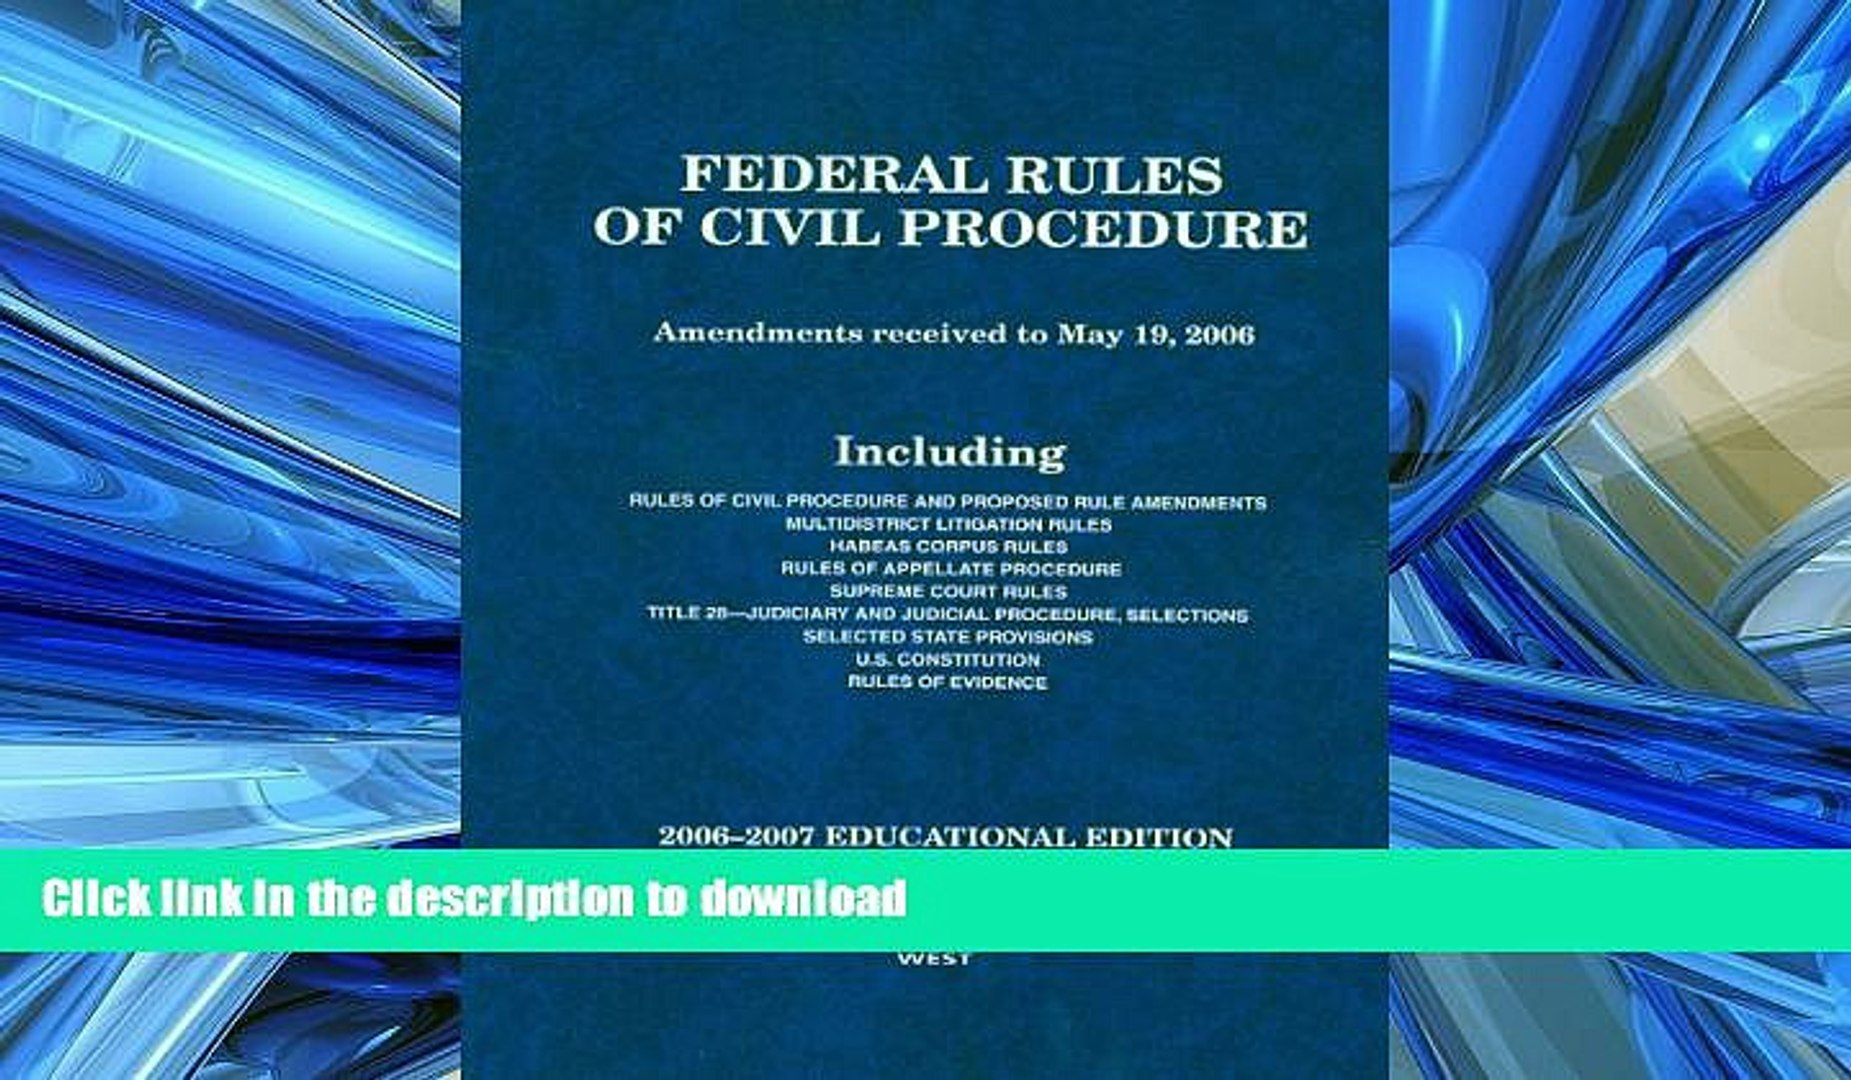 READ THE NEW BOOK Federal Rules of Civil Procedure: Amendments received to May 19, 2006, 2006-2007